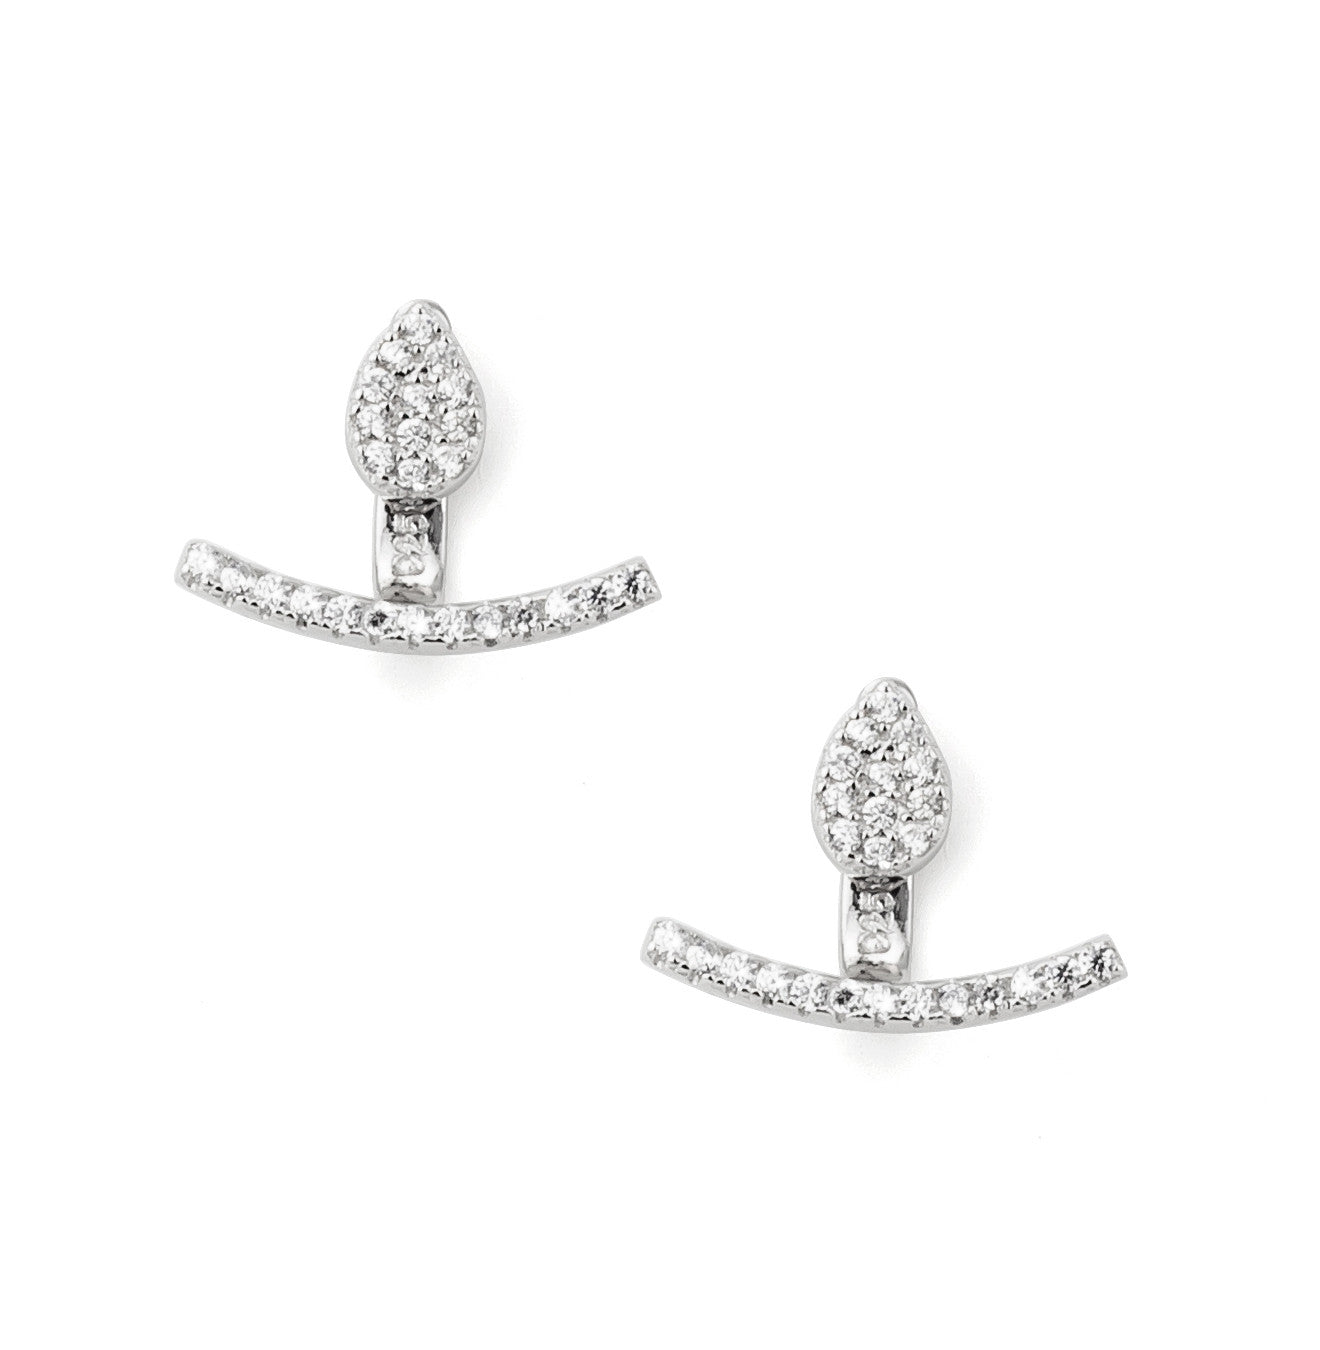 Curved Zirconia Bar Ear Jacket in Silver 925 - Silver